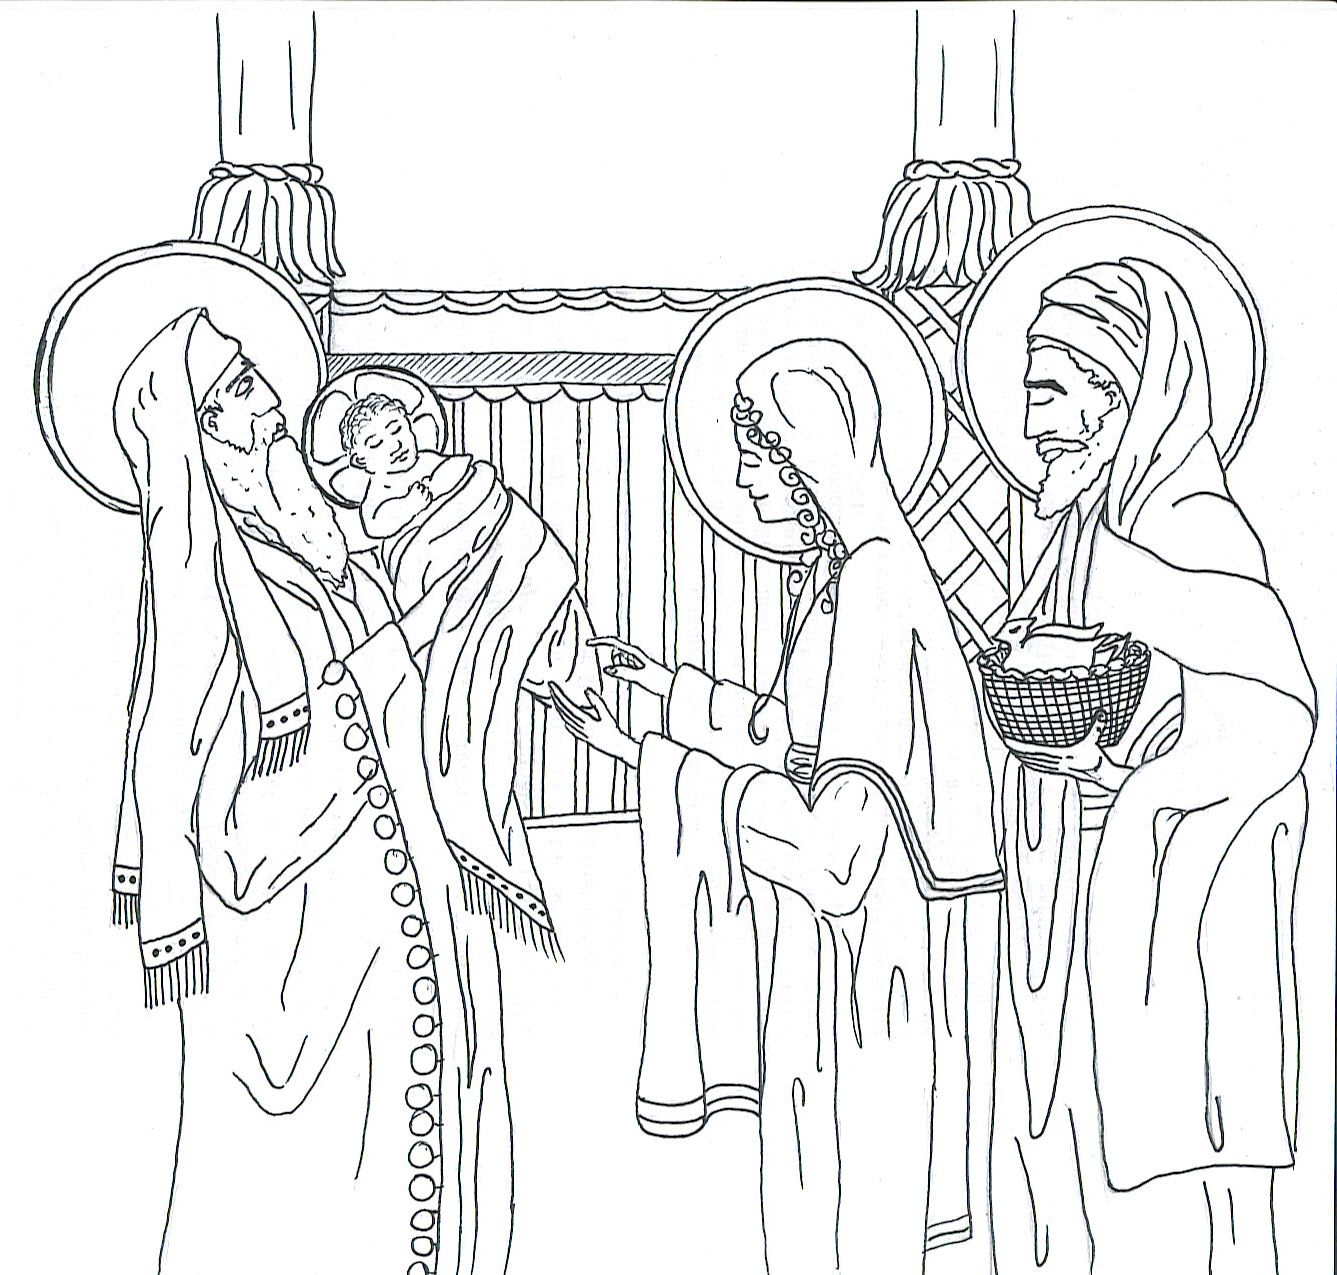 Colouring pages for epiphany - Catholic Coloring Page For Kids Of The Presentation In The Temple